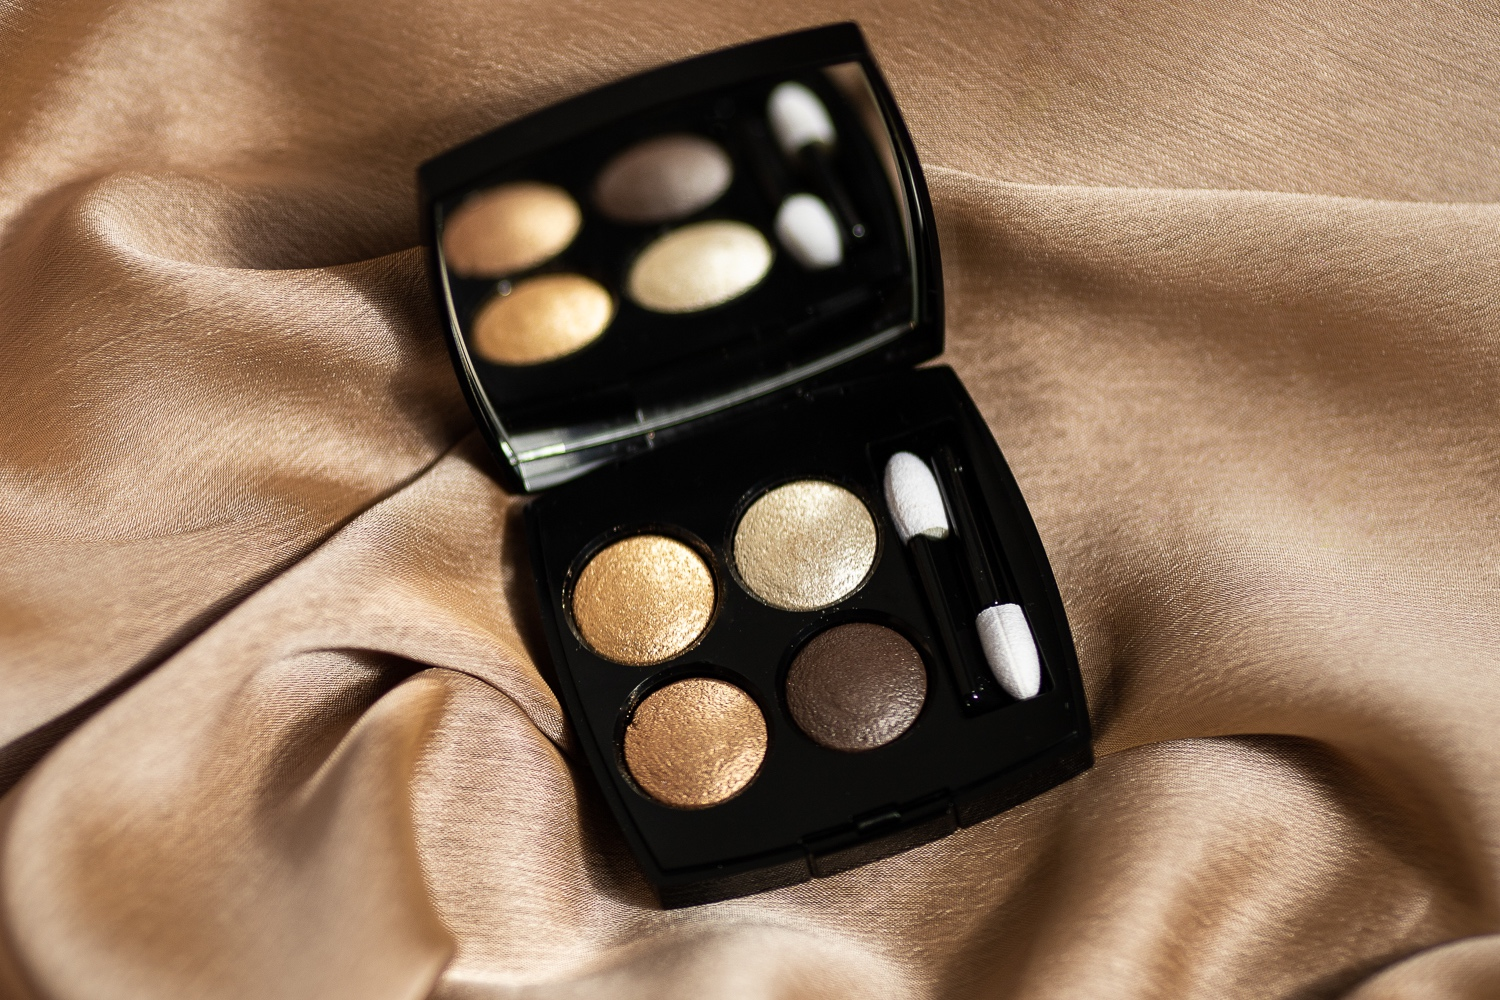 Chanel+codes+elegant+eyeshadow+palette